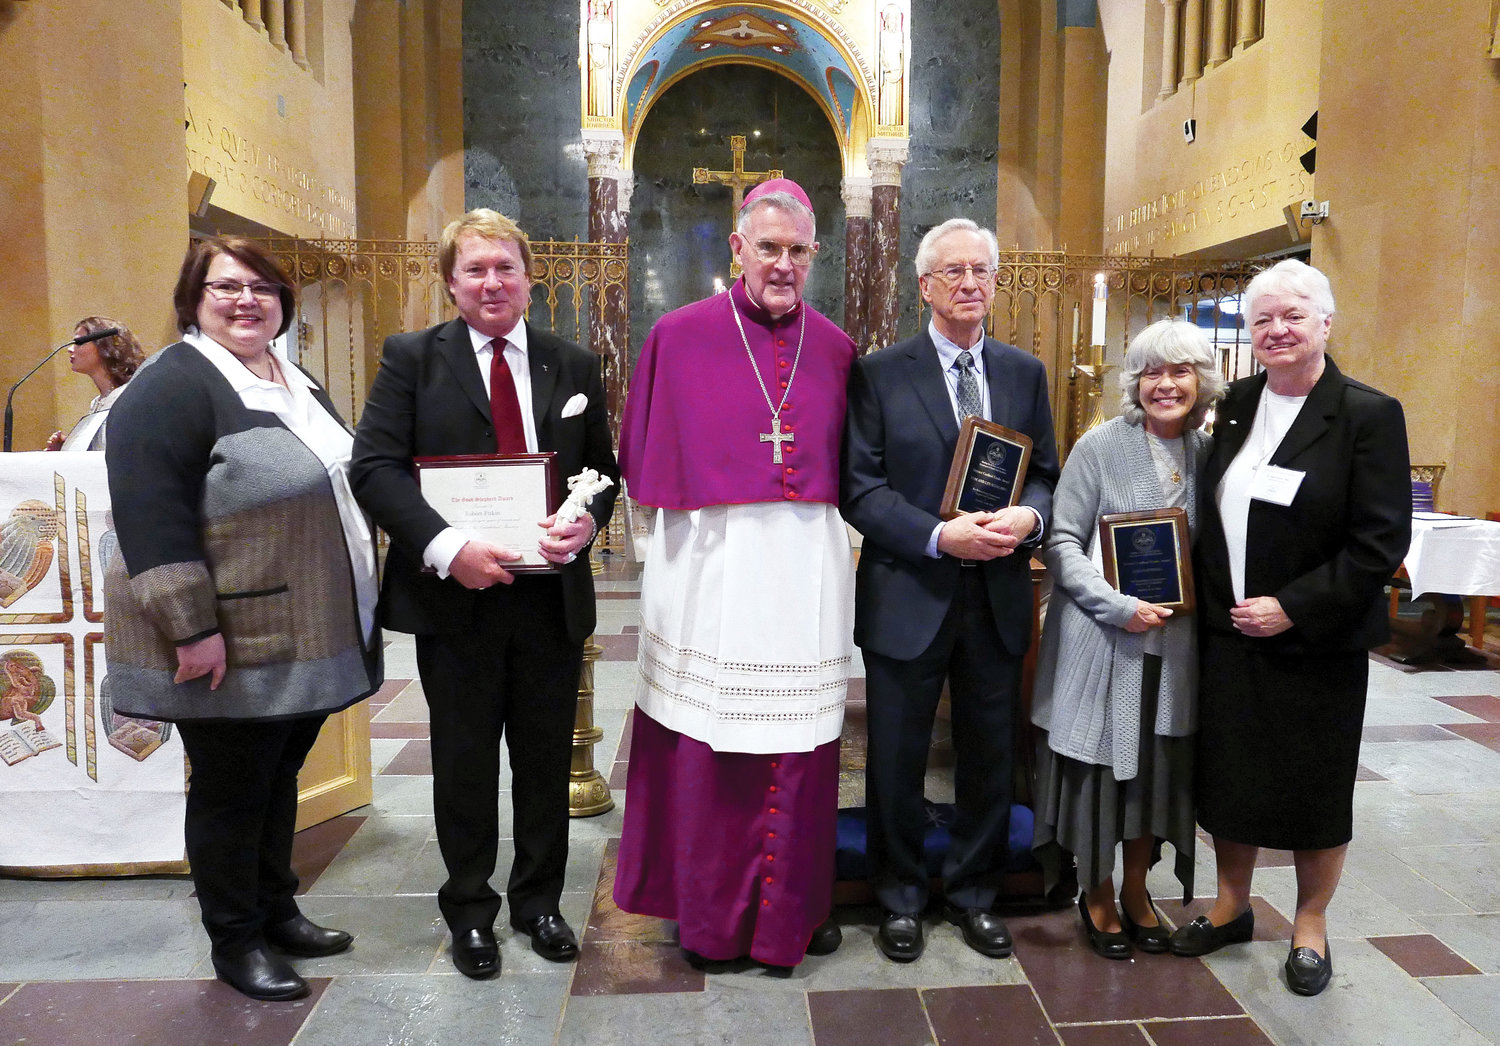 Holding a miniature statue, is Robert Fitkin, who received the Good Shepherd Award. Recipients of the Terence Cardinal Cooke Award included Tom Scheuring and, to his right, Janis Batewell. At far right is Sister Joan Curtin, C.N.D., director of the Catechetical Office and, at far left, Ela Milewska, executive director of the Office of Youth Faith Fcatechists conferred the Catechetical Medal of Honor for 25 years or more of service.ormation.